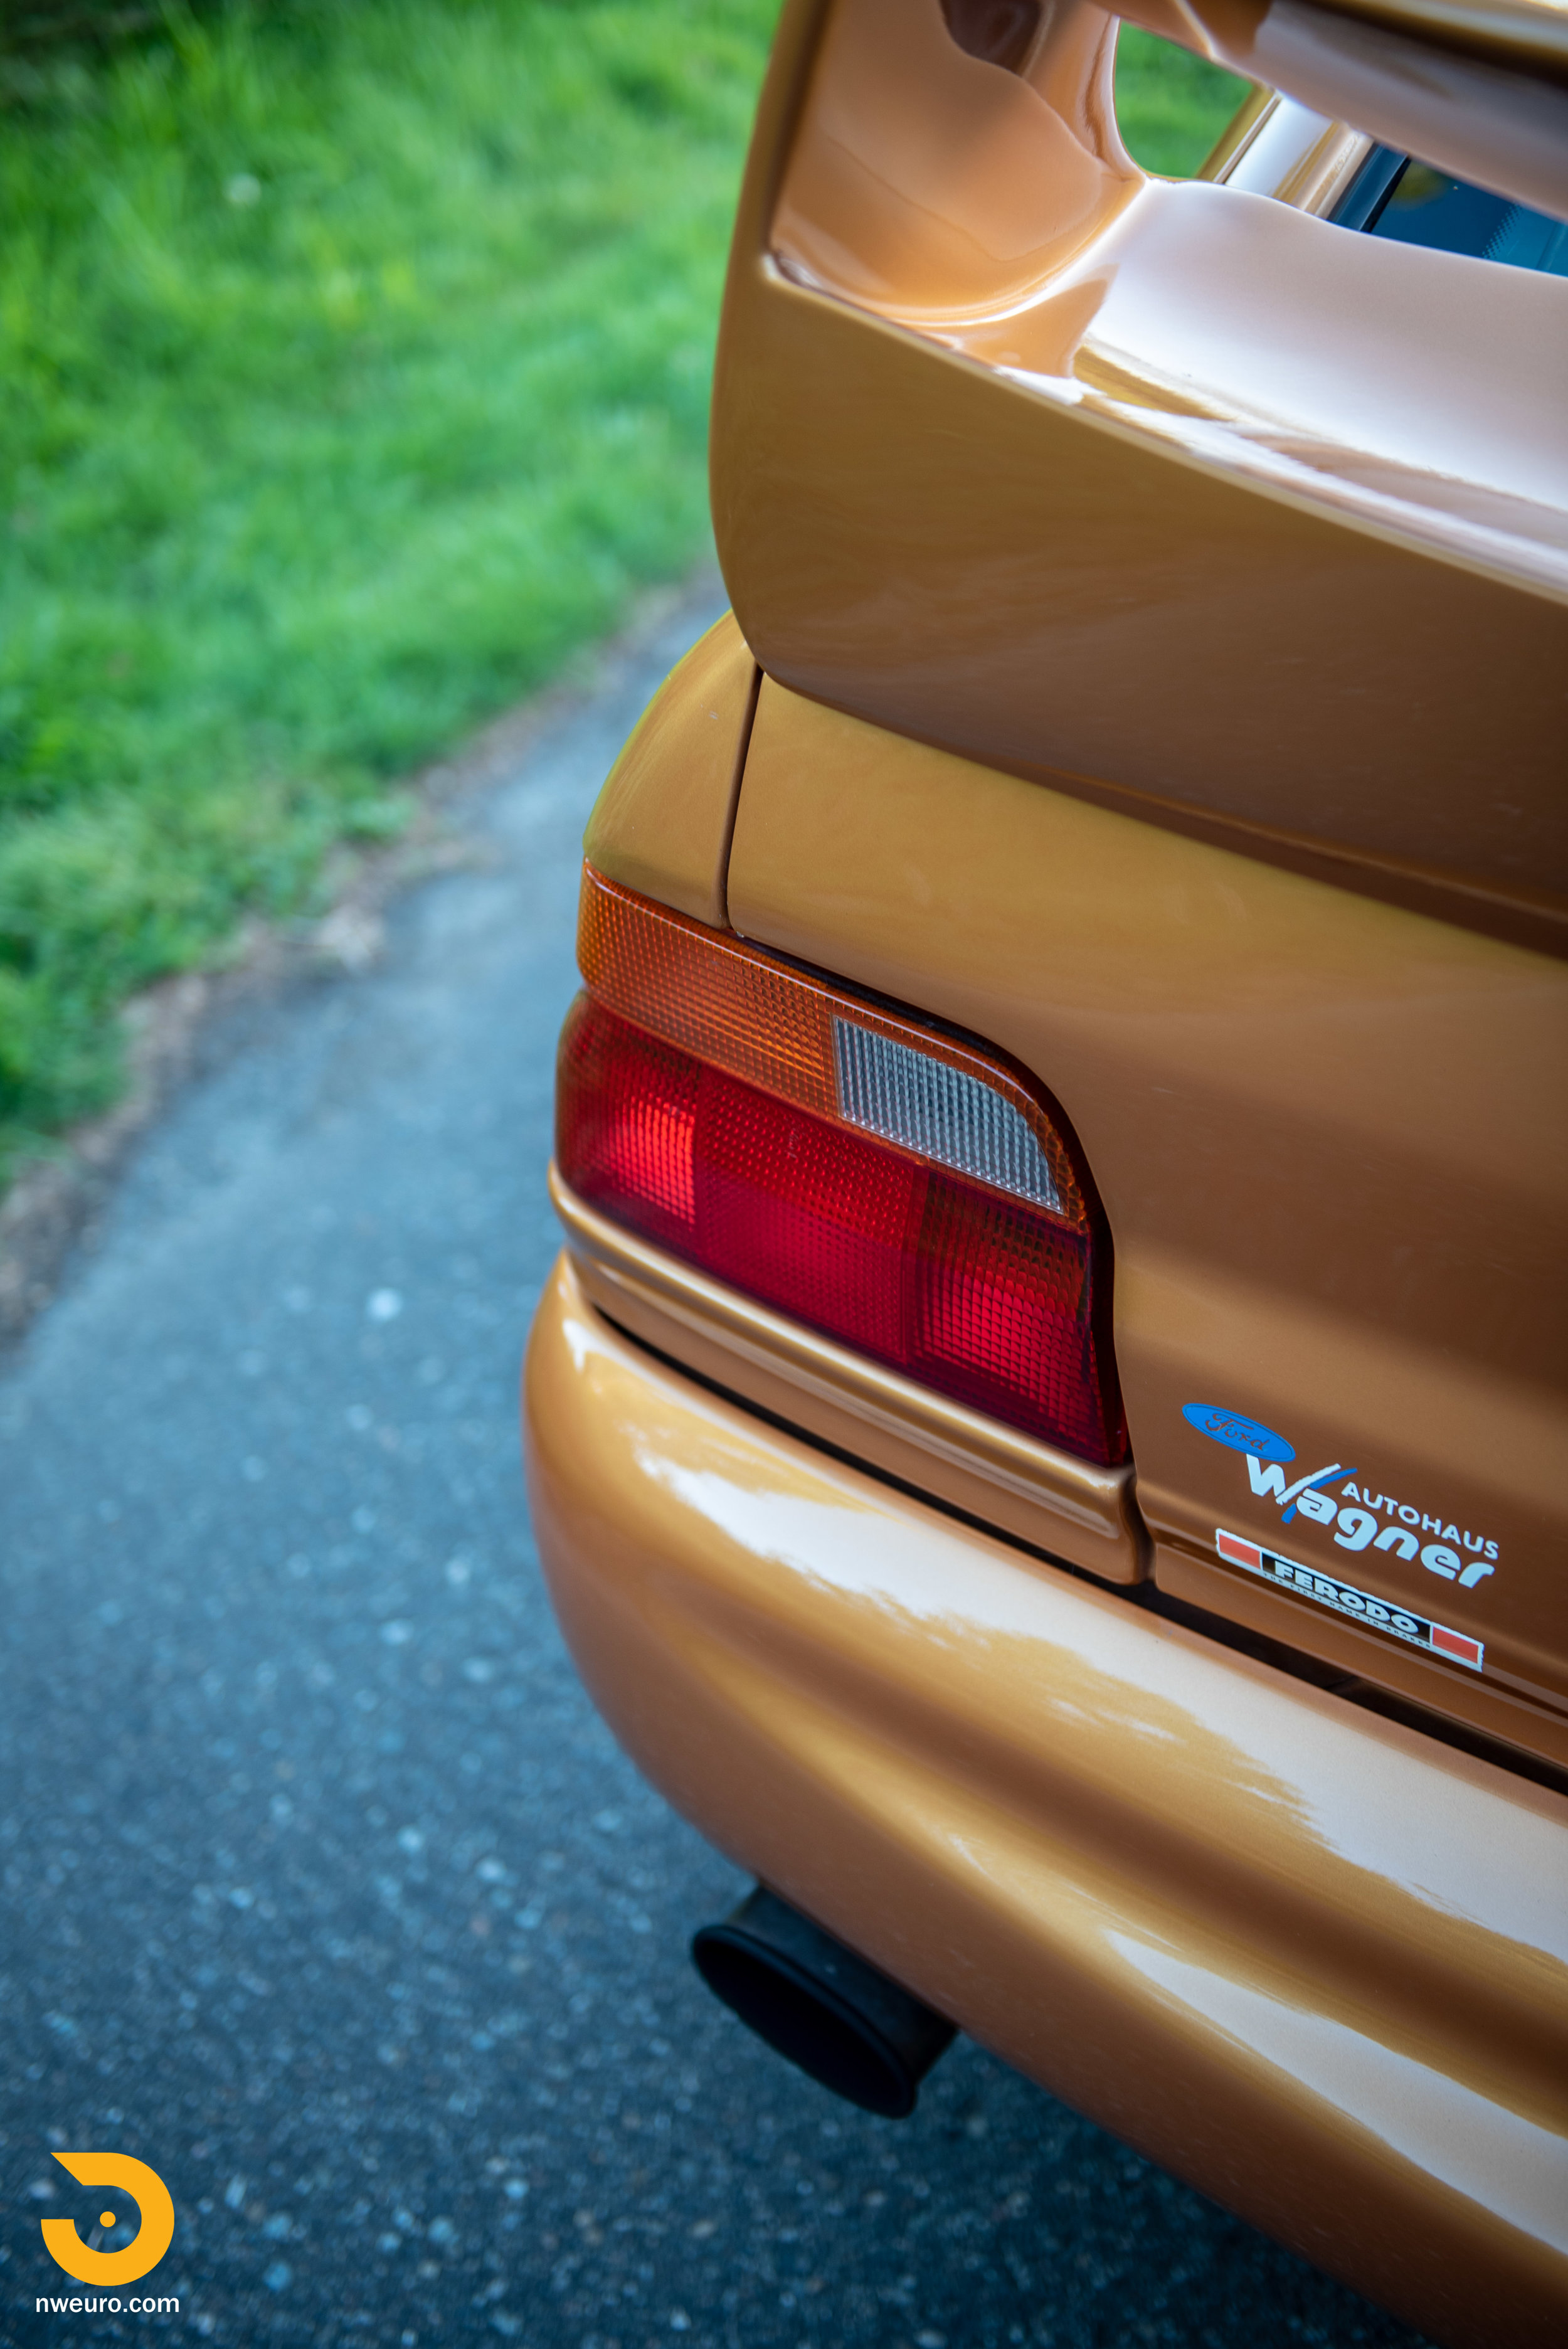 1995 Ford Escort Cosworth RS Gold-14.jpg